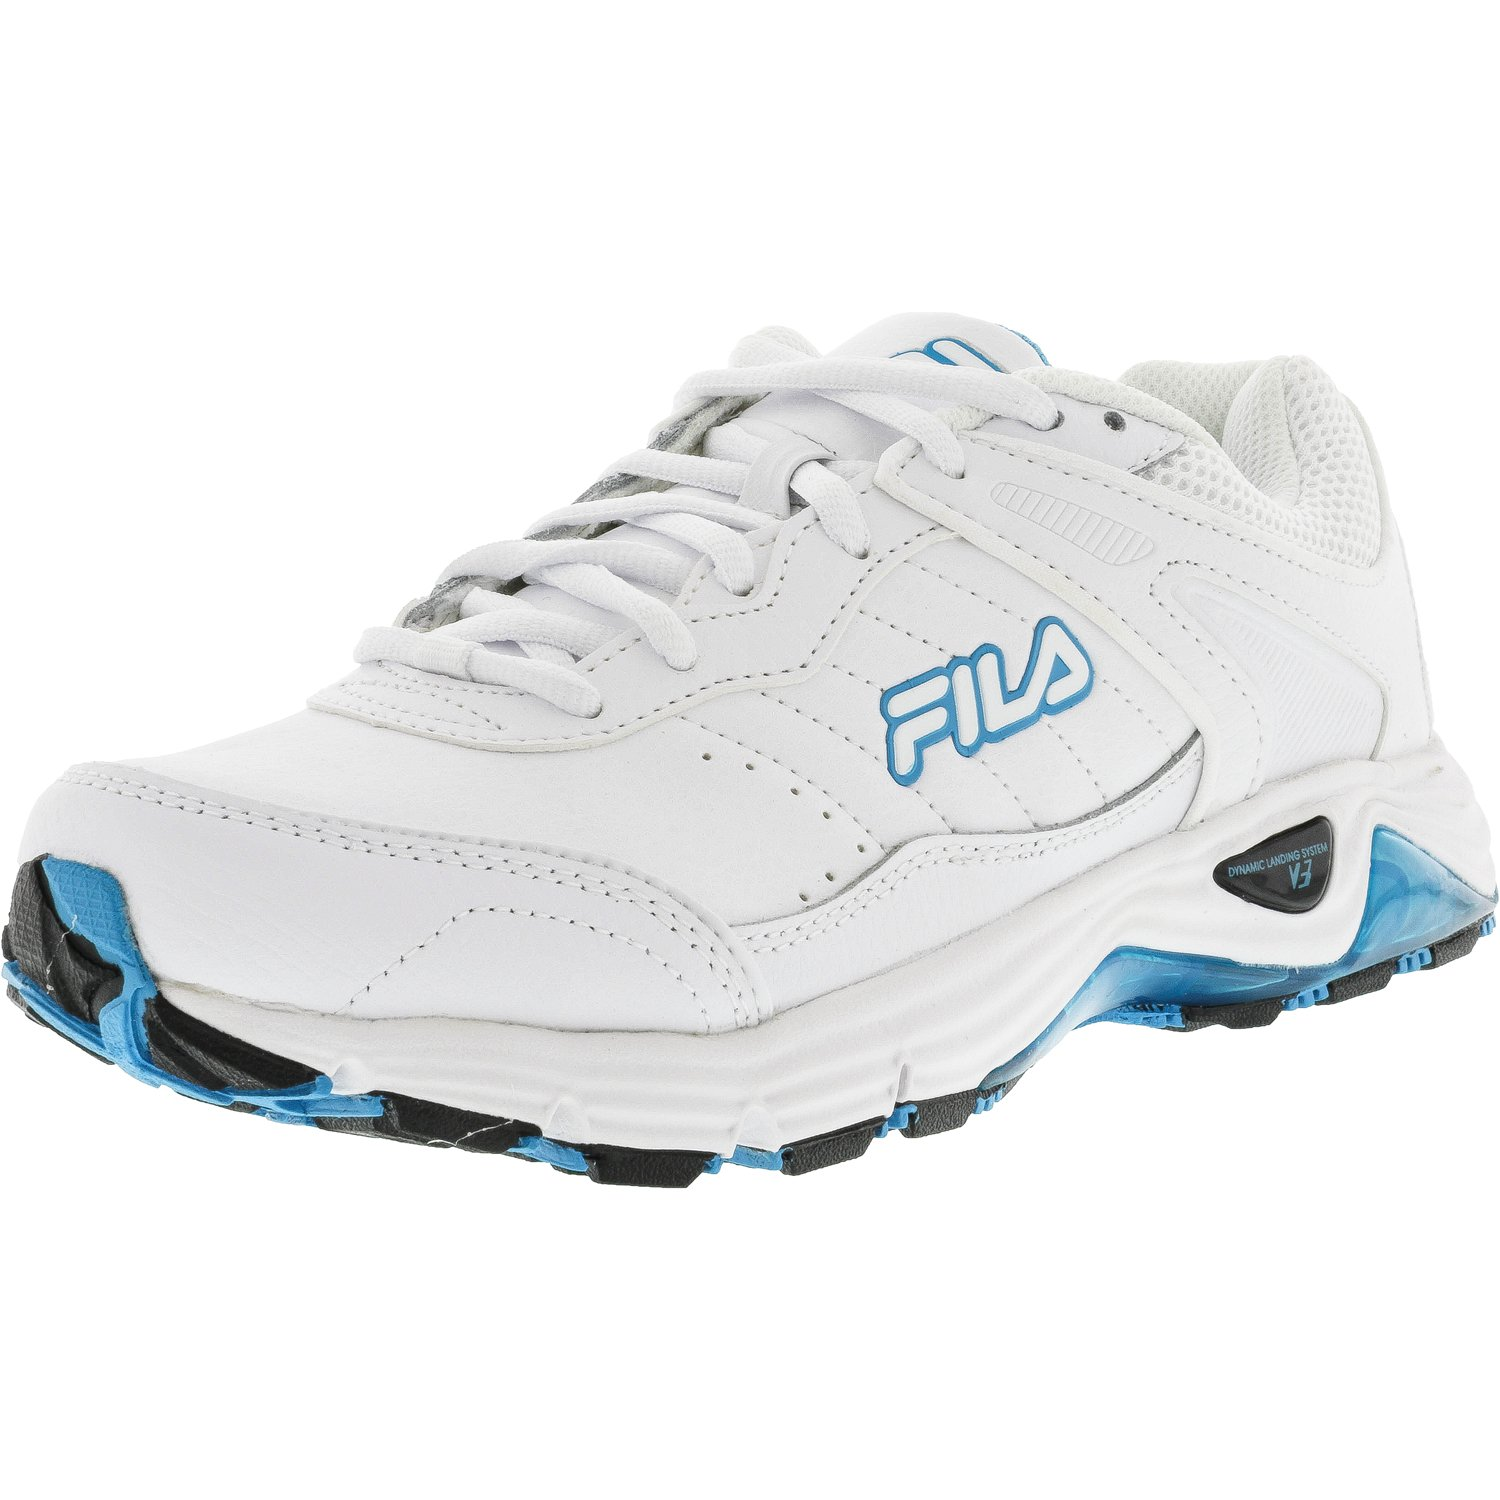 Fila Women's Memory Cool Sport White   Neon Blue High Rise Ankle-High Running Shoe 7.5M by Fila